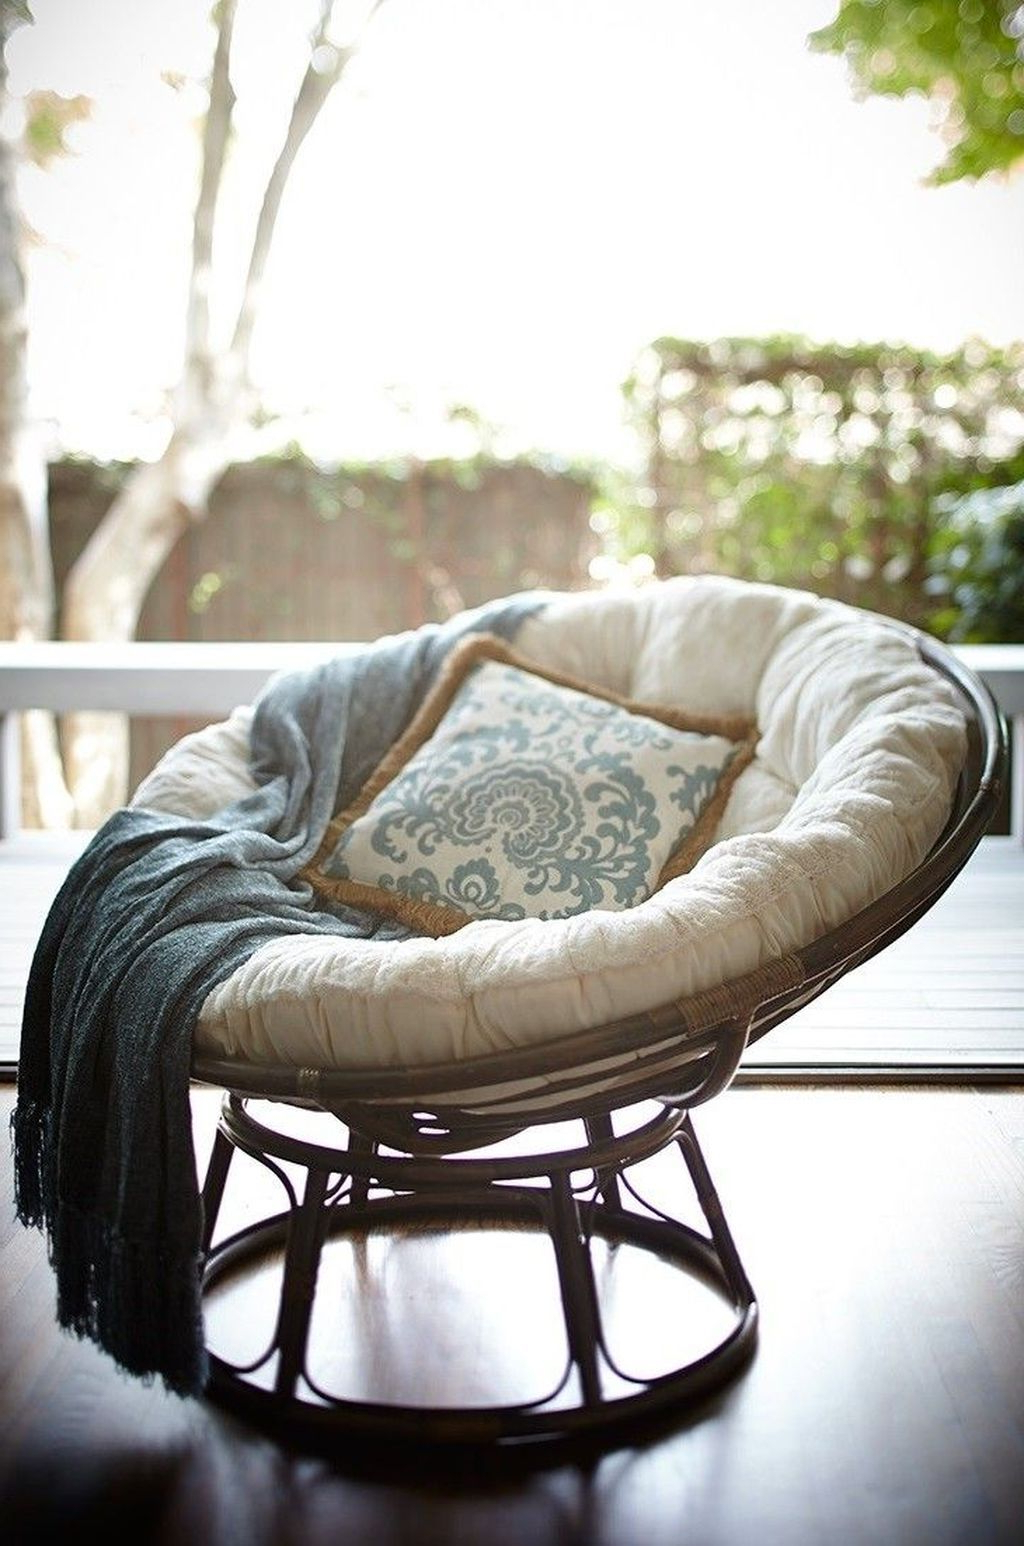 Newest Orndorff Tufted Papasan Chairs In 40+ A Startling Fact About Papasan Chair Uncovered (View 10 of 20)